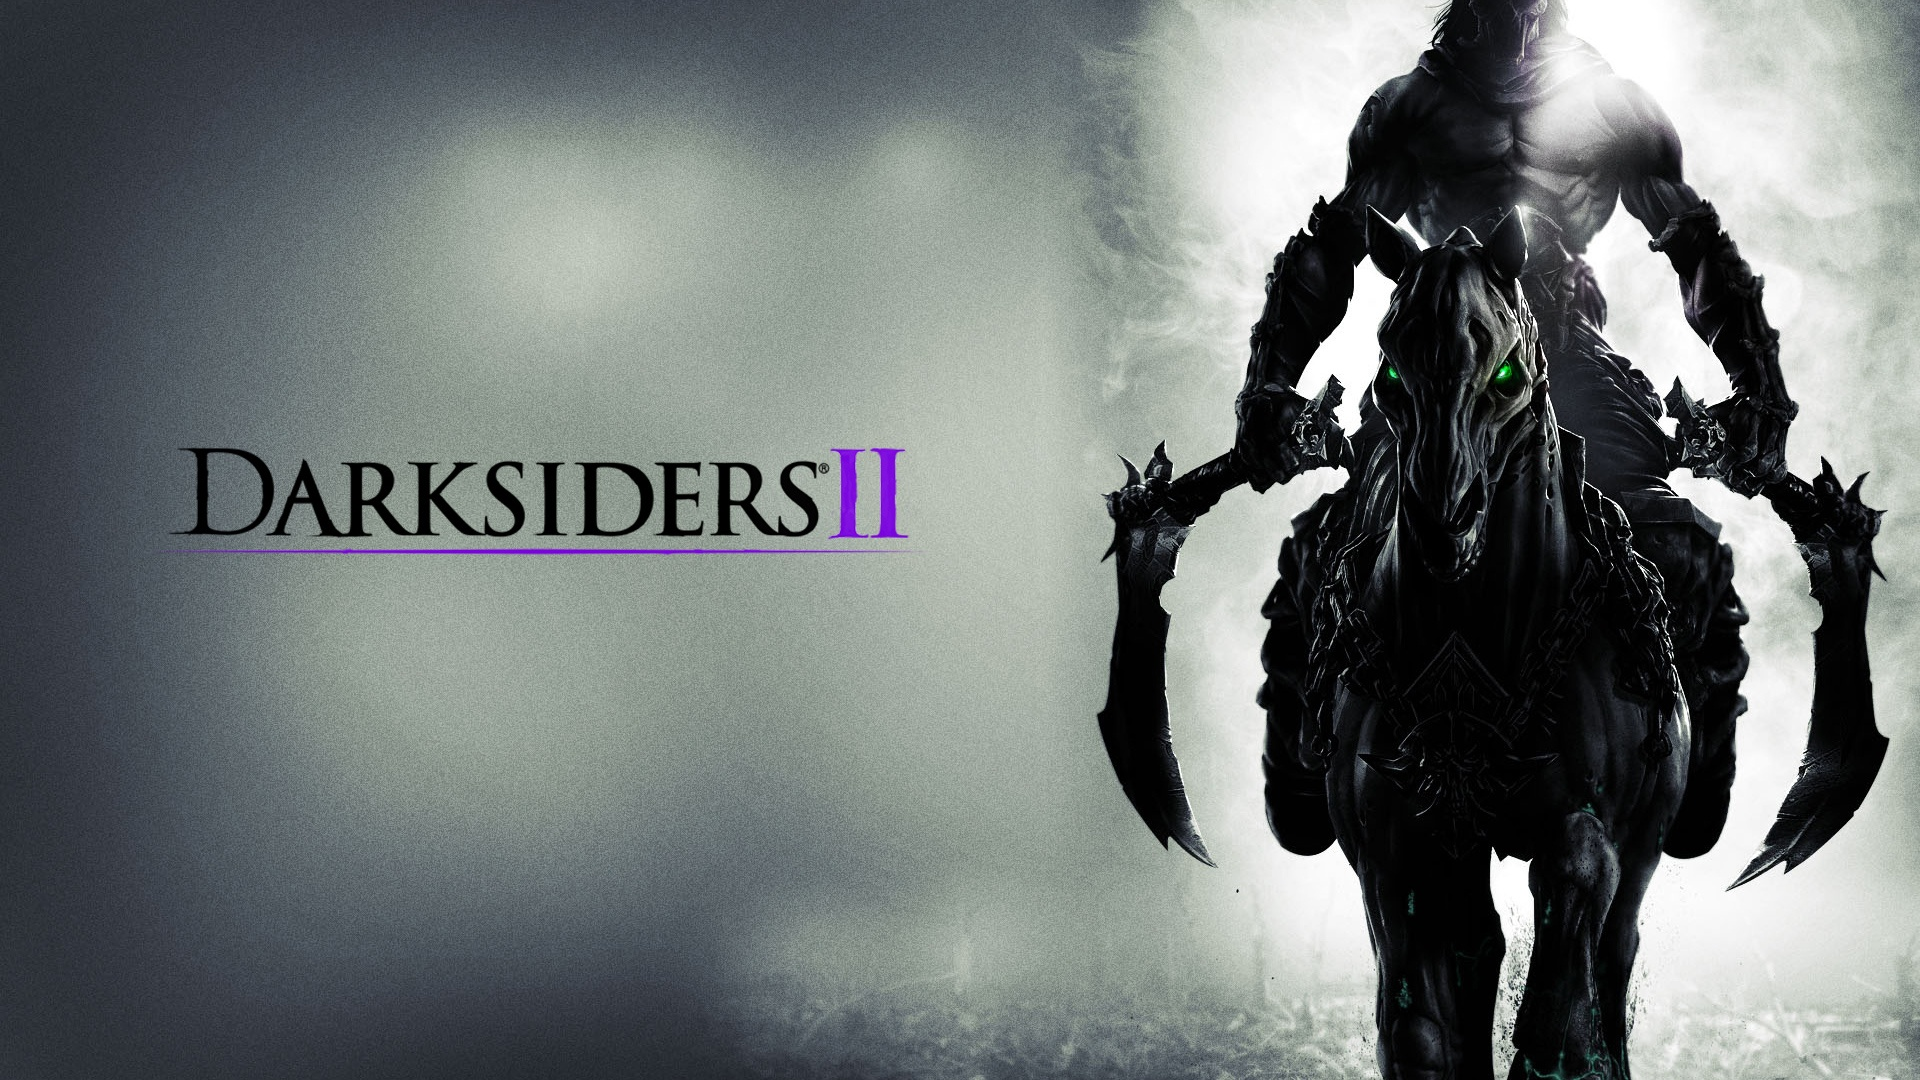 Darksiders 2 Game Wallpaper Full HD Desktop Wallpapers 1080p 1920x1080